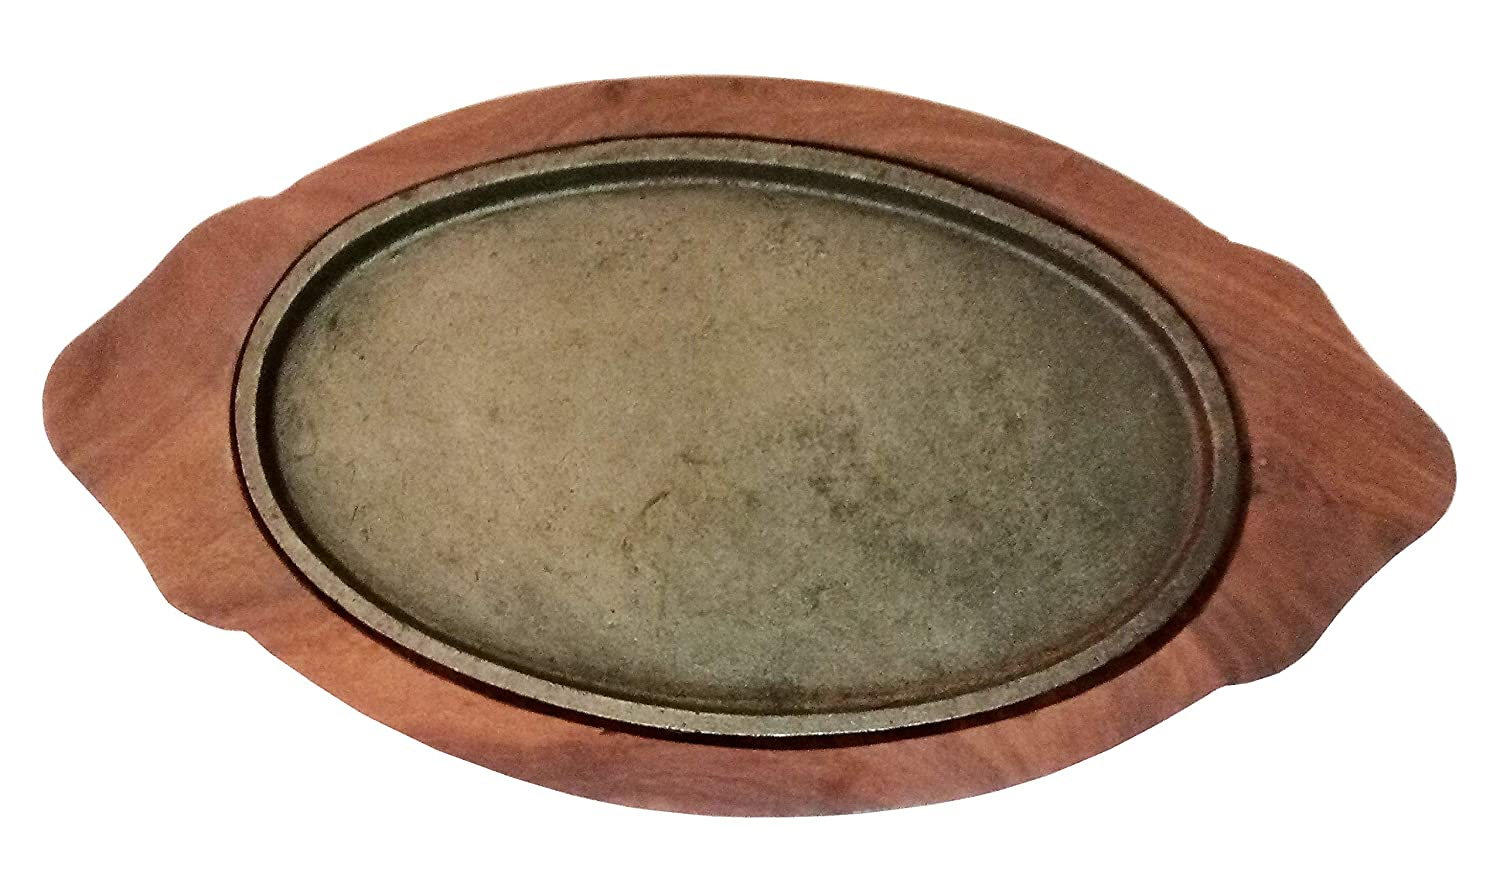 Sahishnu Online And Marketing Fajita Pan with Wooden Tray Sizzling Brownie Sizzler Plate//Tray with Wooden Base Oval